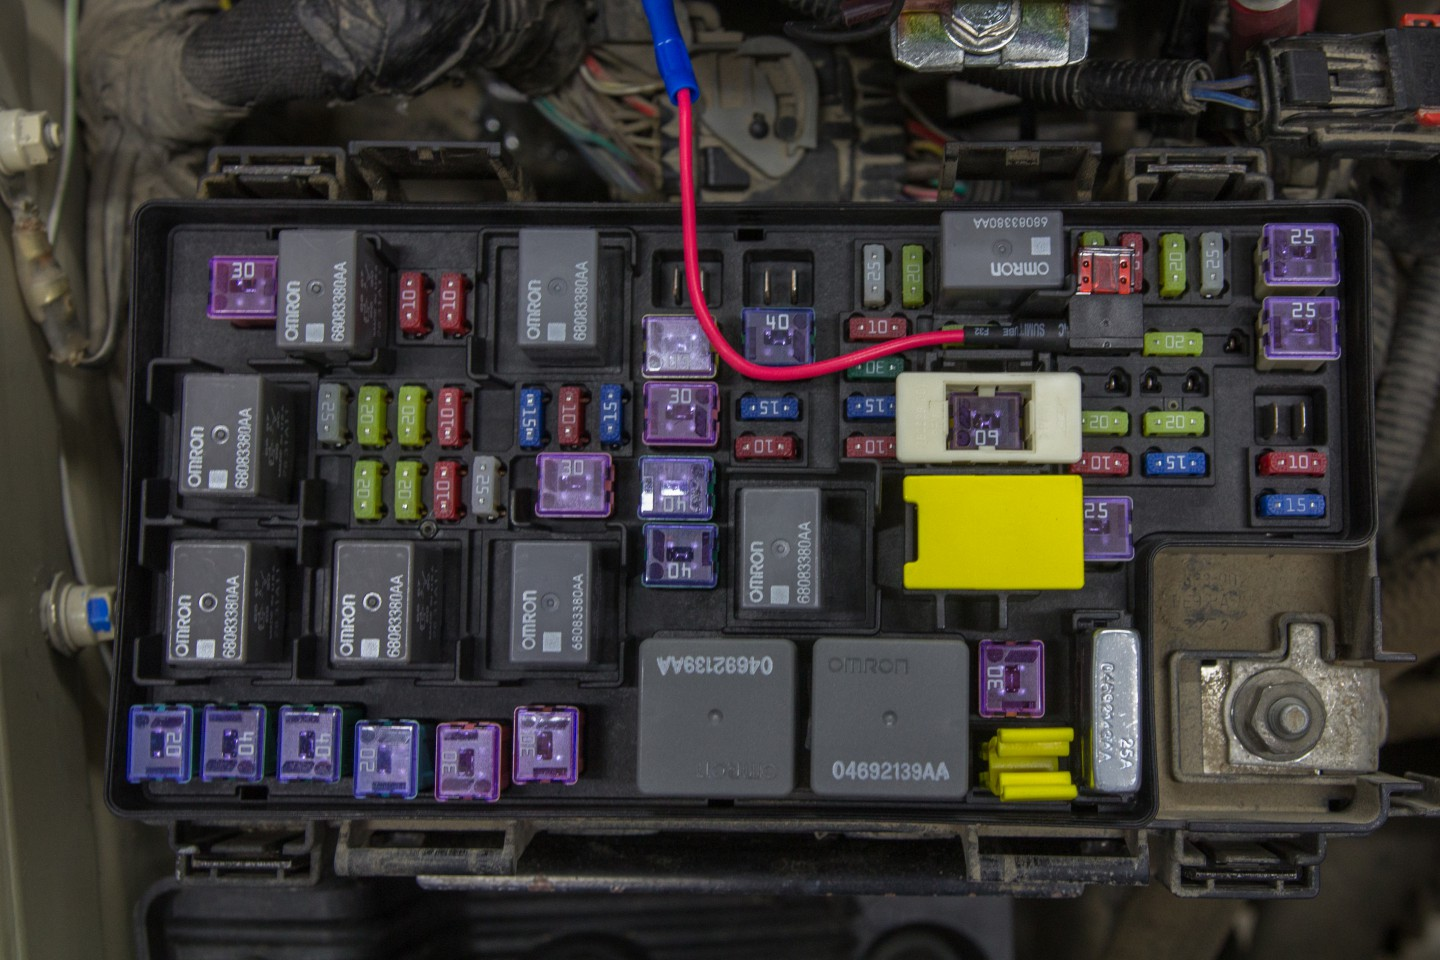 Jeep Wrangler Fuse Box Diagram 2012 Reveolution Of Wiring 2004 Grand Cherokee 16 Jk How To Teach U2022 Rh Csq Carnival Pinnion Com 2007